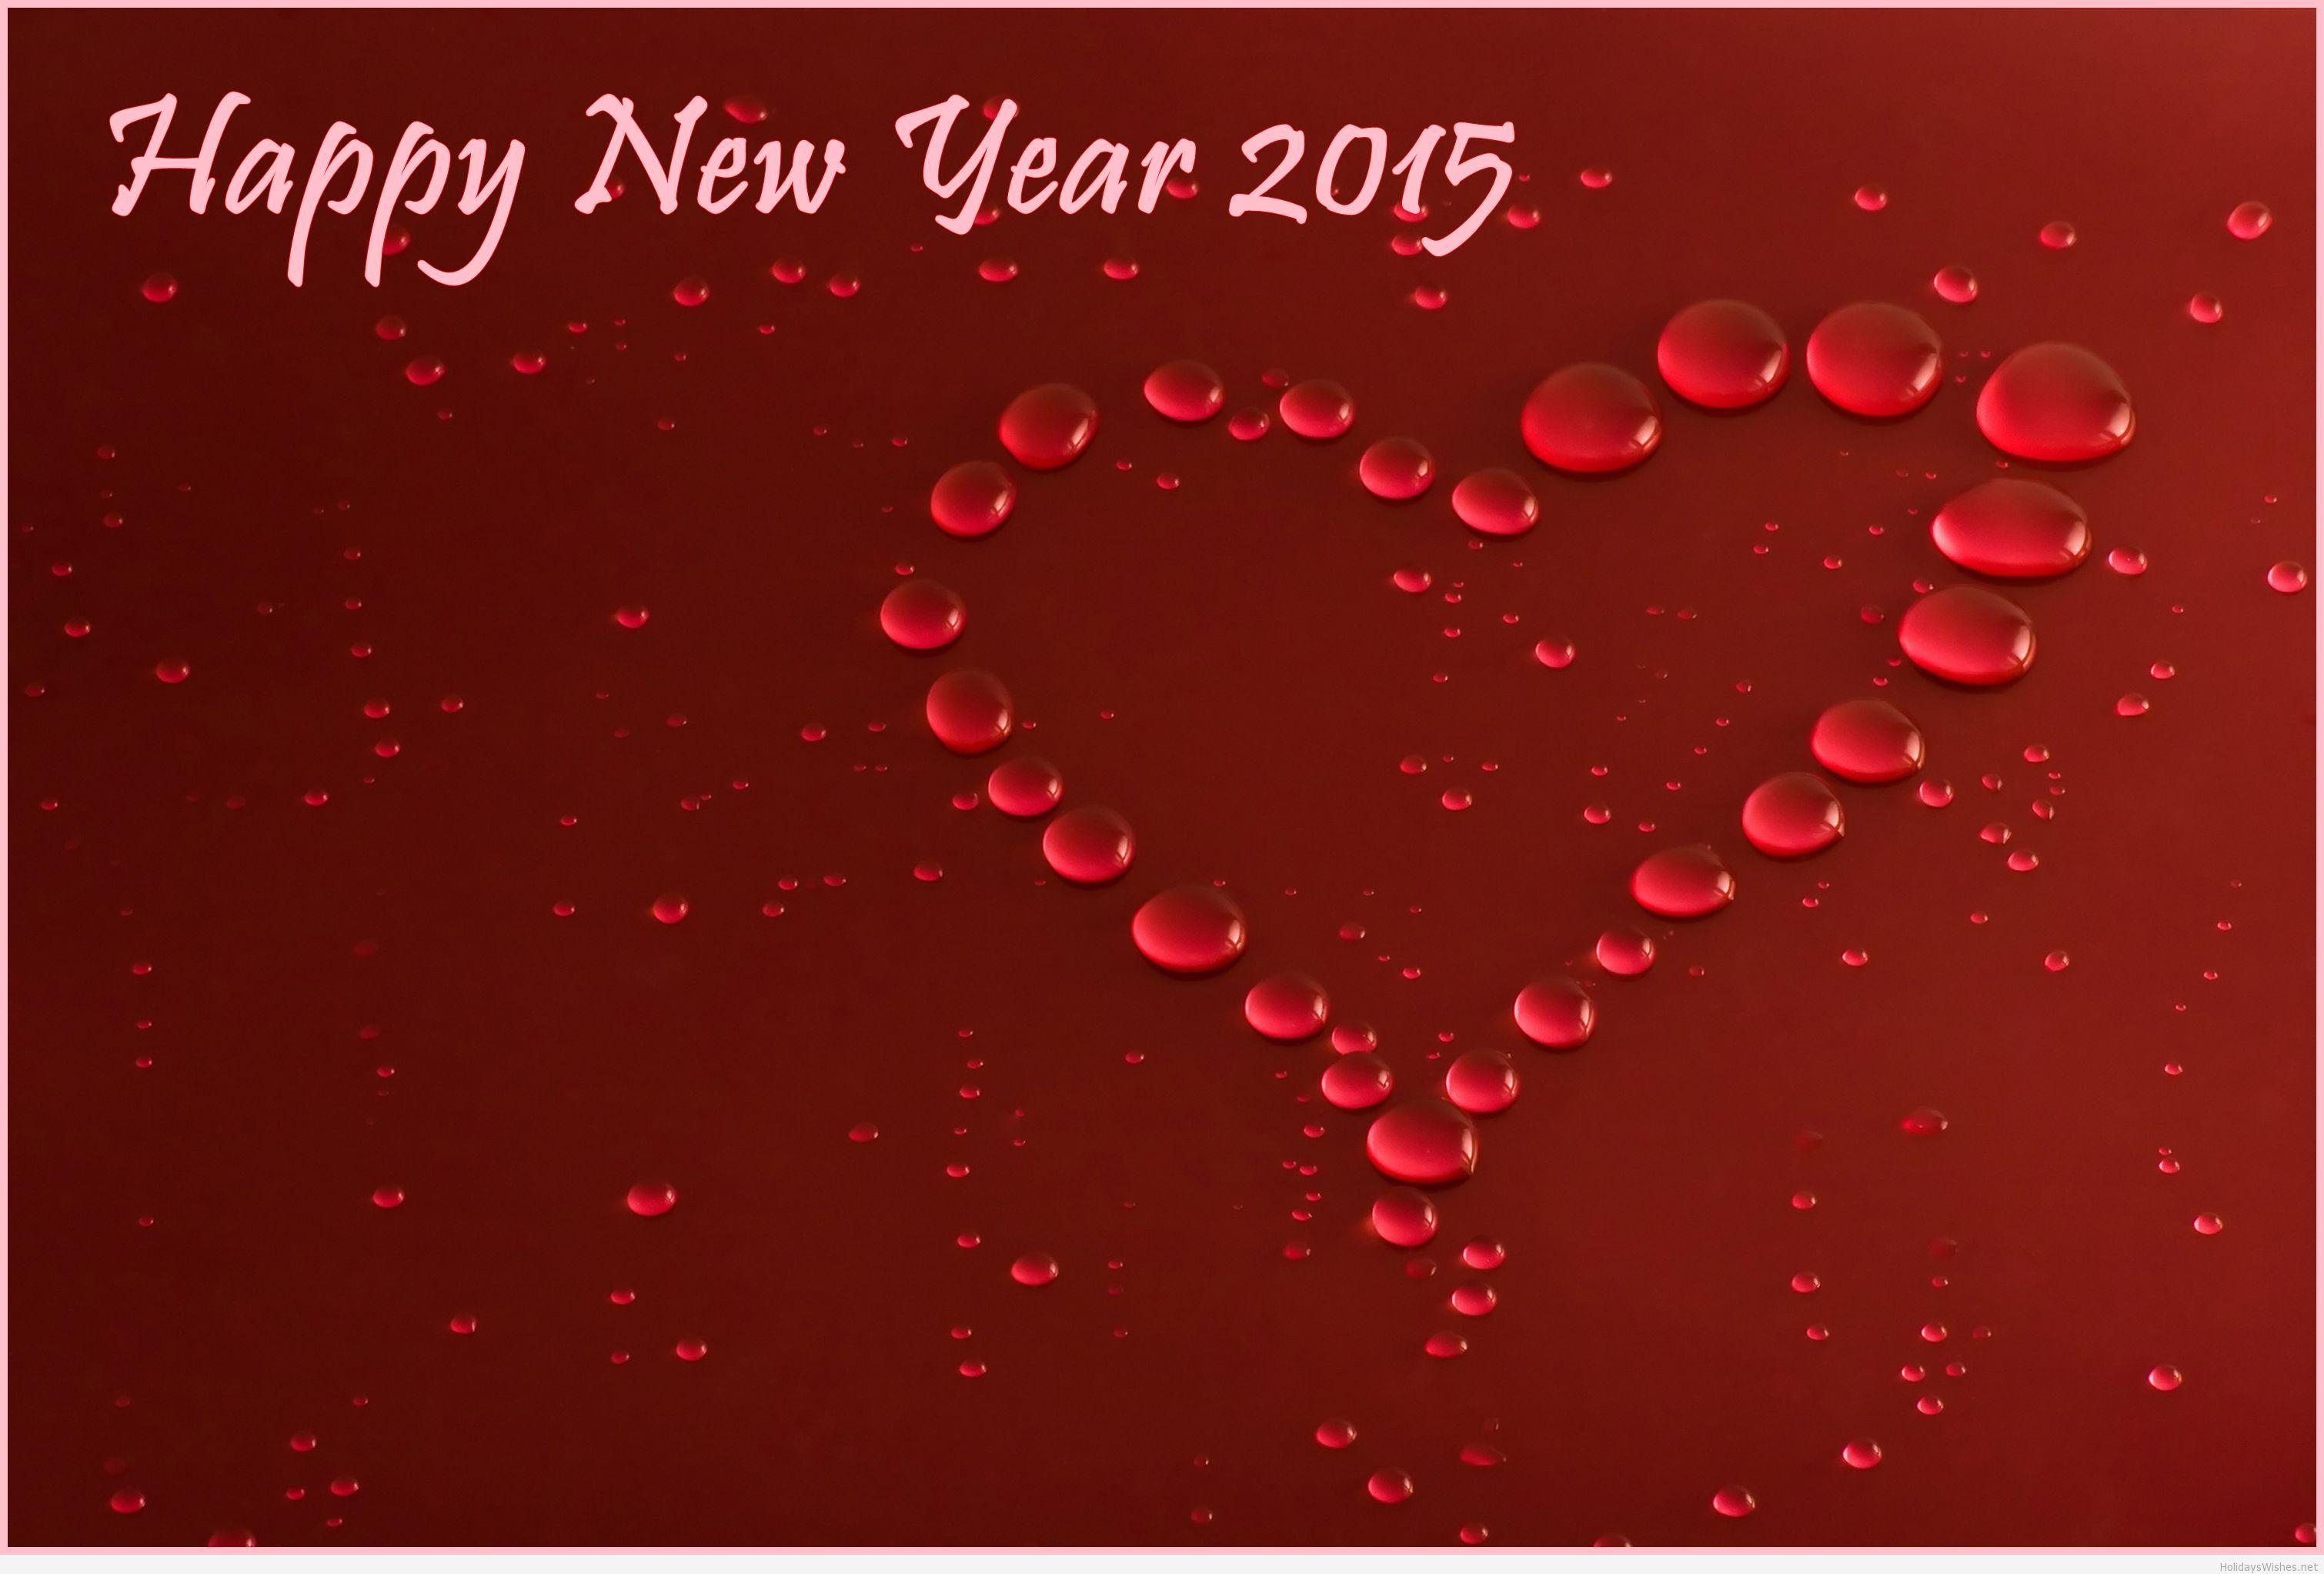 Happy New Year Love Wallpapers 2015 - Wallpaper cave